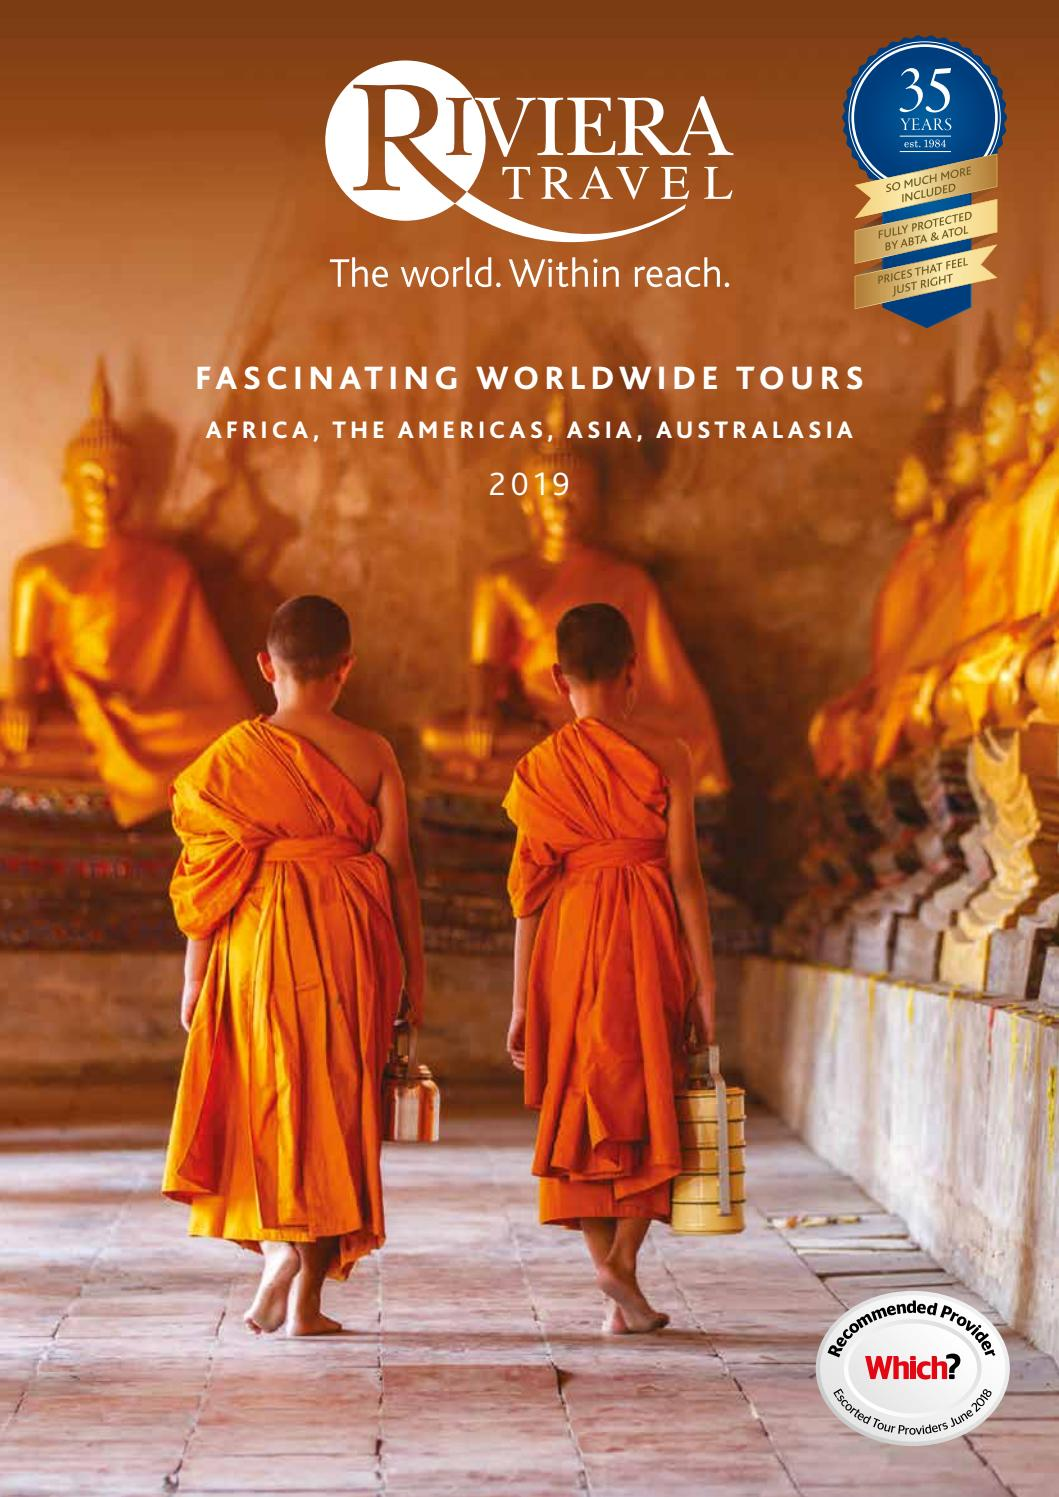 a45f5436b56 Fascinating Worldwide Tours 2019 by Riviera Travel - issuu